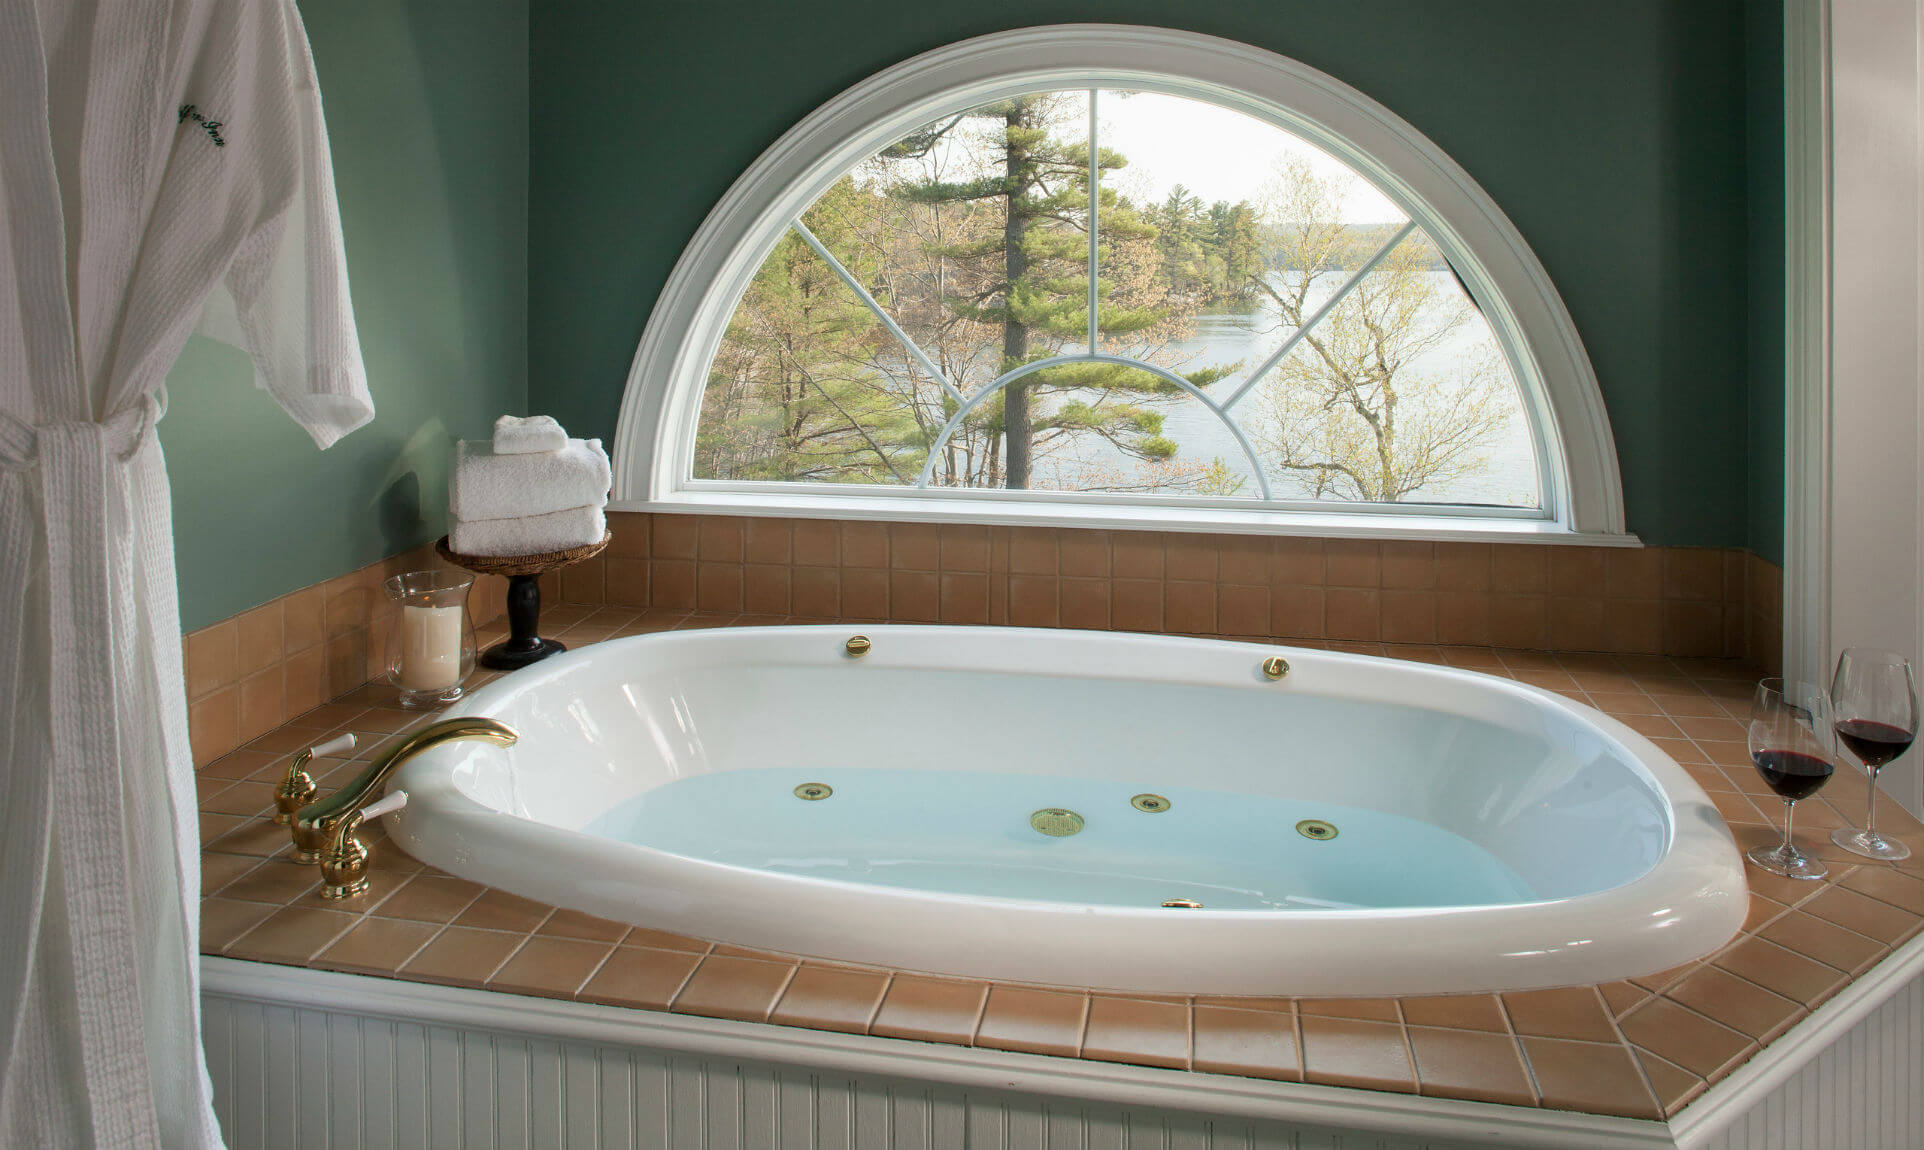 Shot of the filled warm bath tub and bathrobe next to the window overlooking Tripp Lake